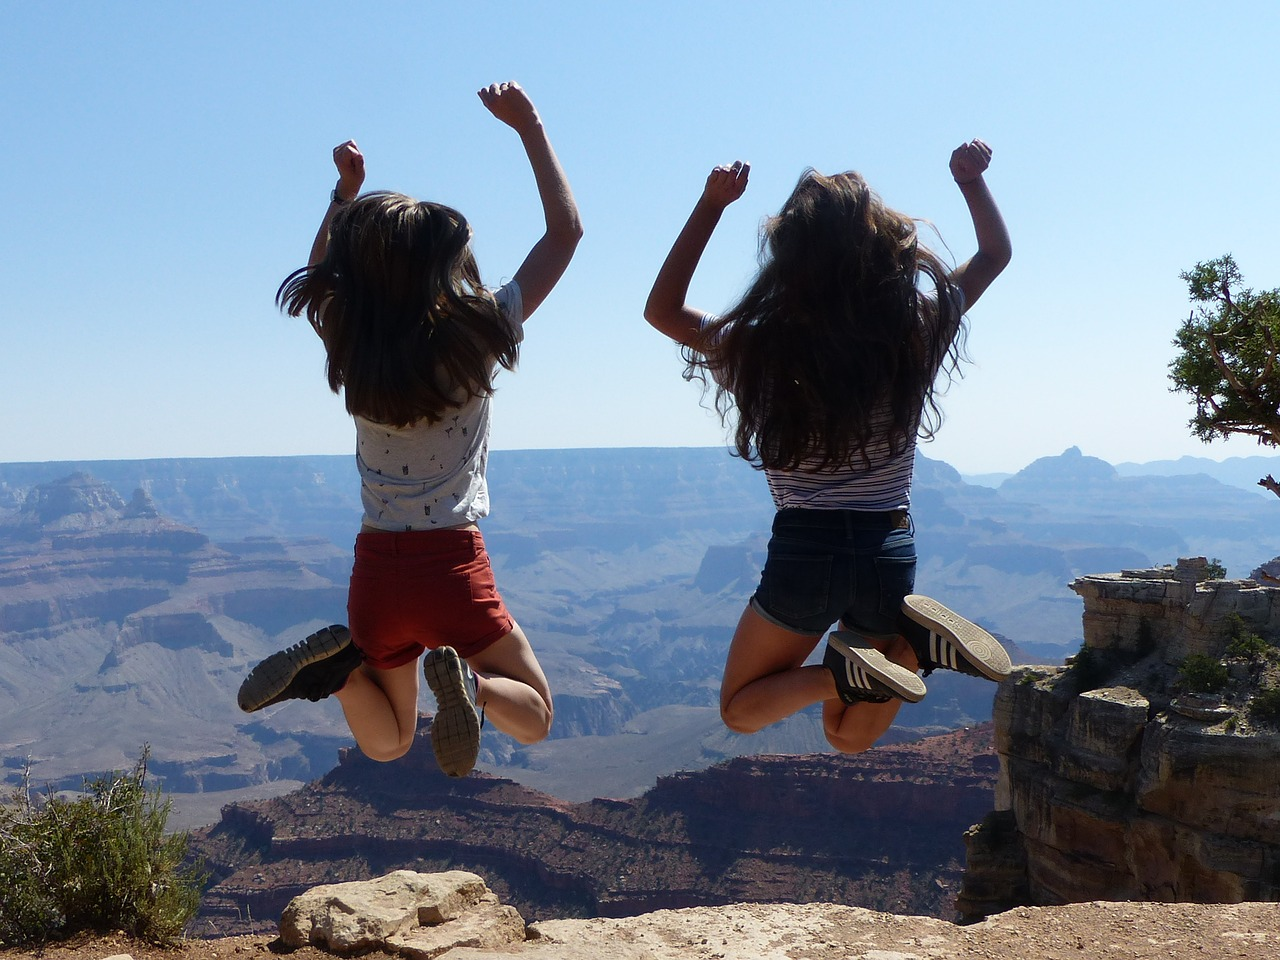 two children at the Grand Canyon